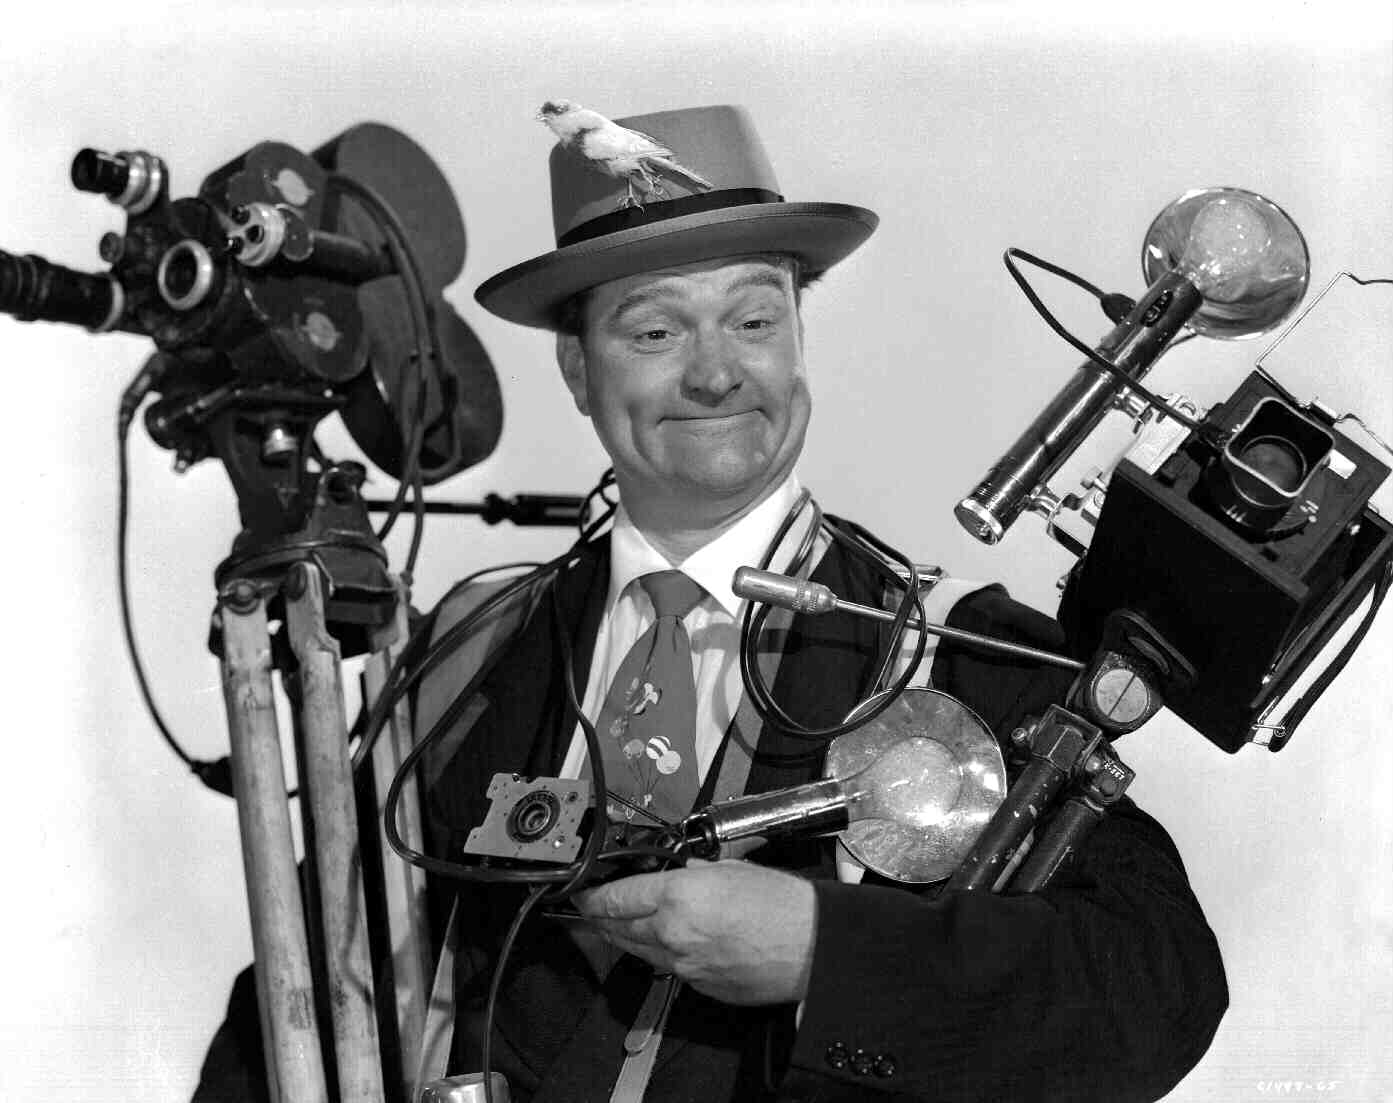 Watch the Birdie - Red Skelton with cameras